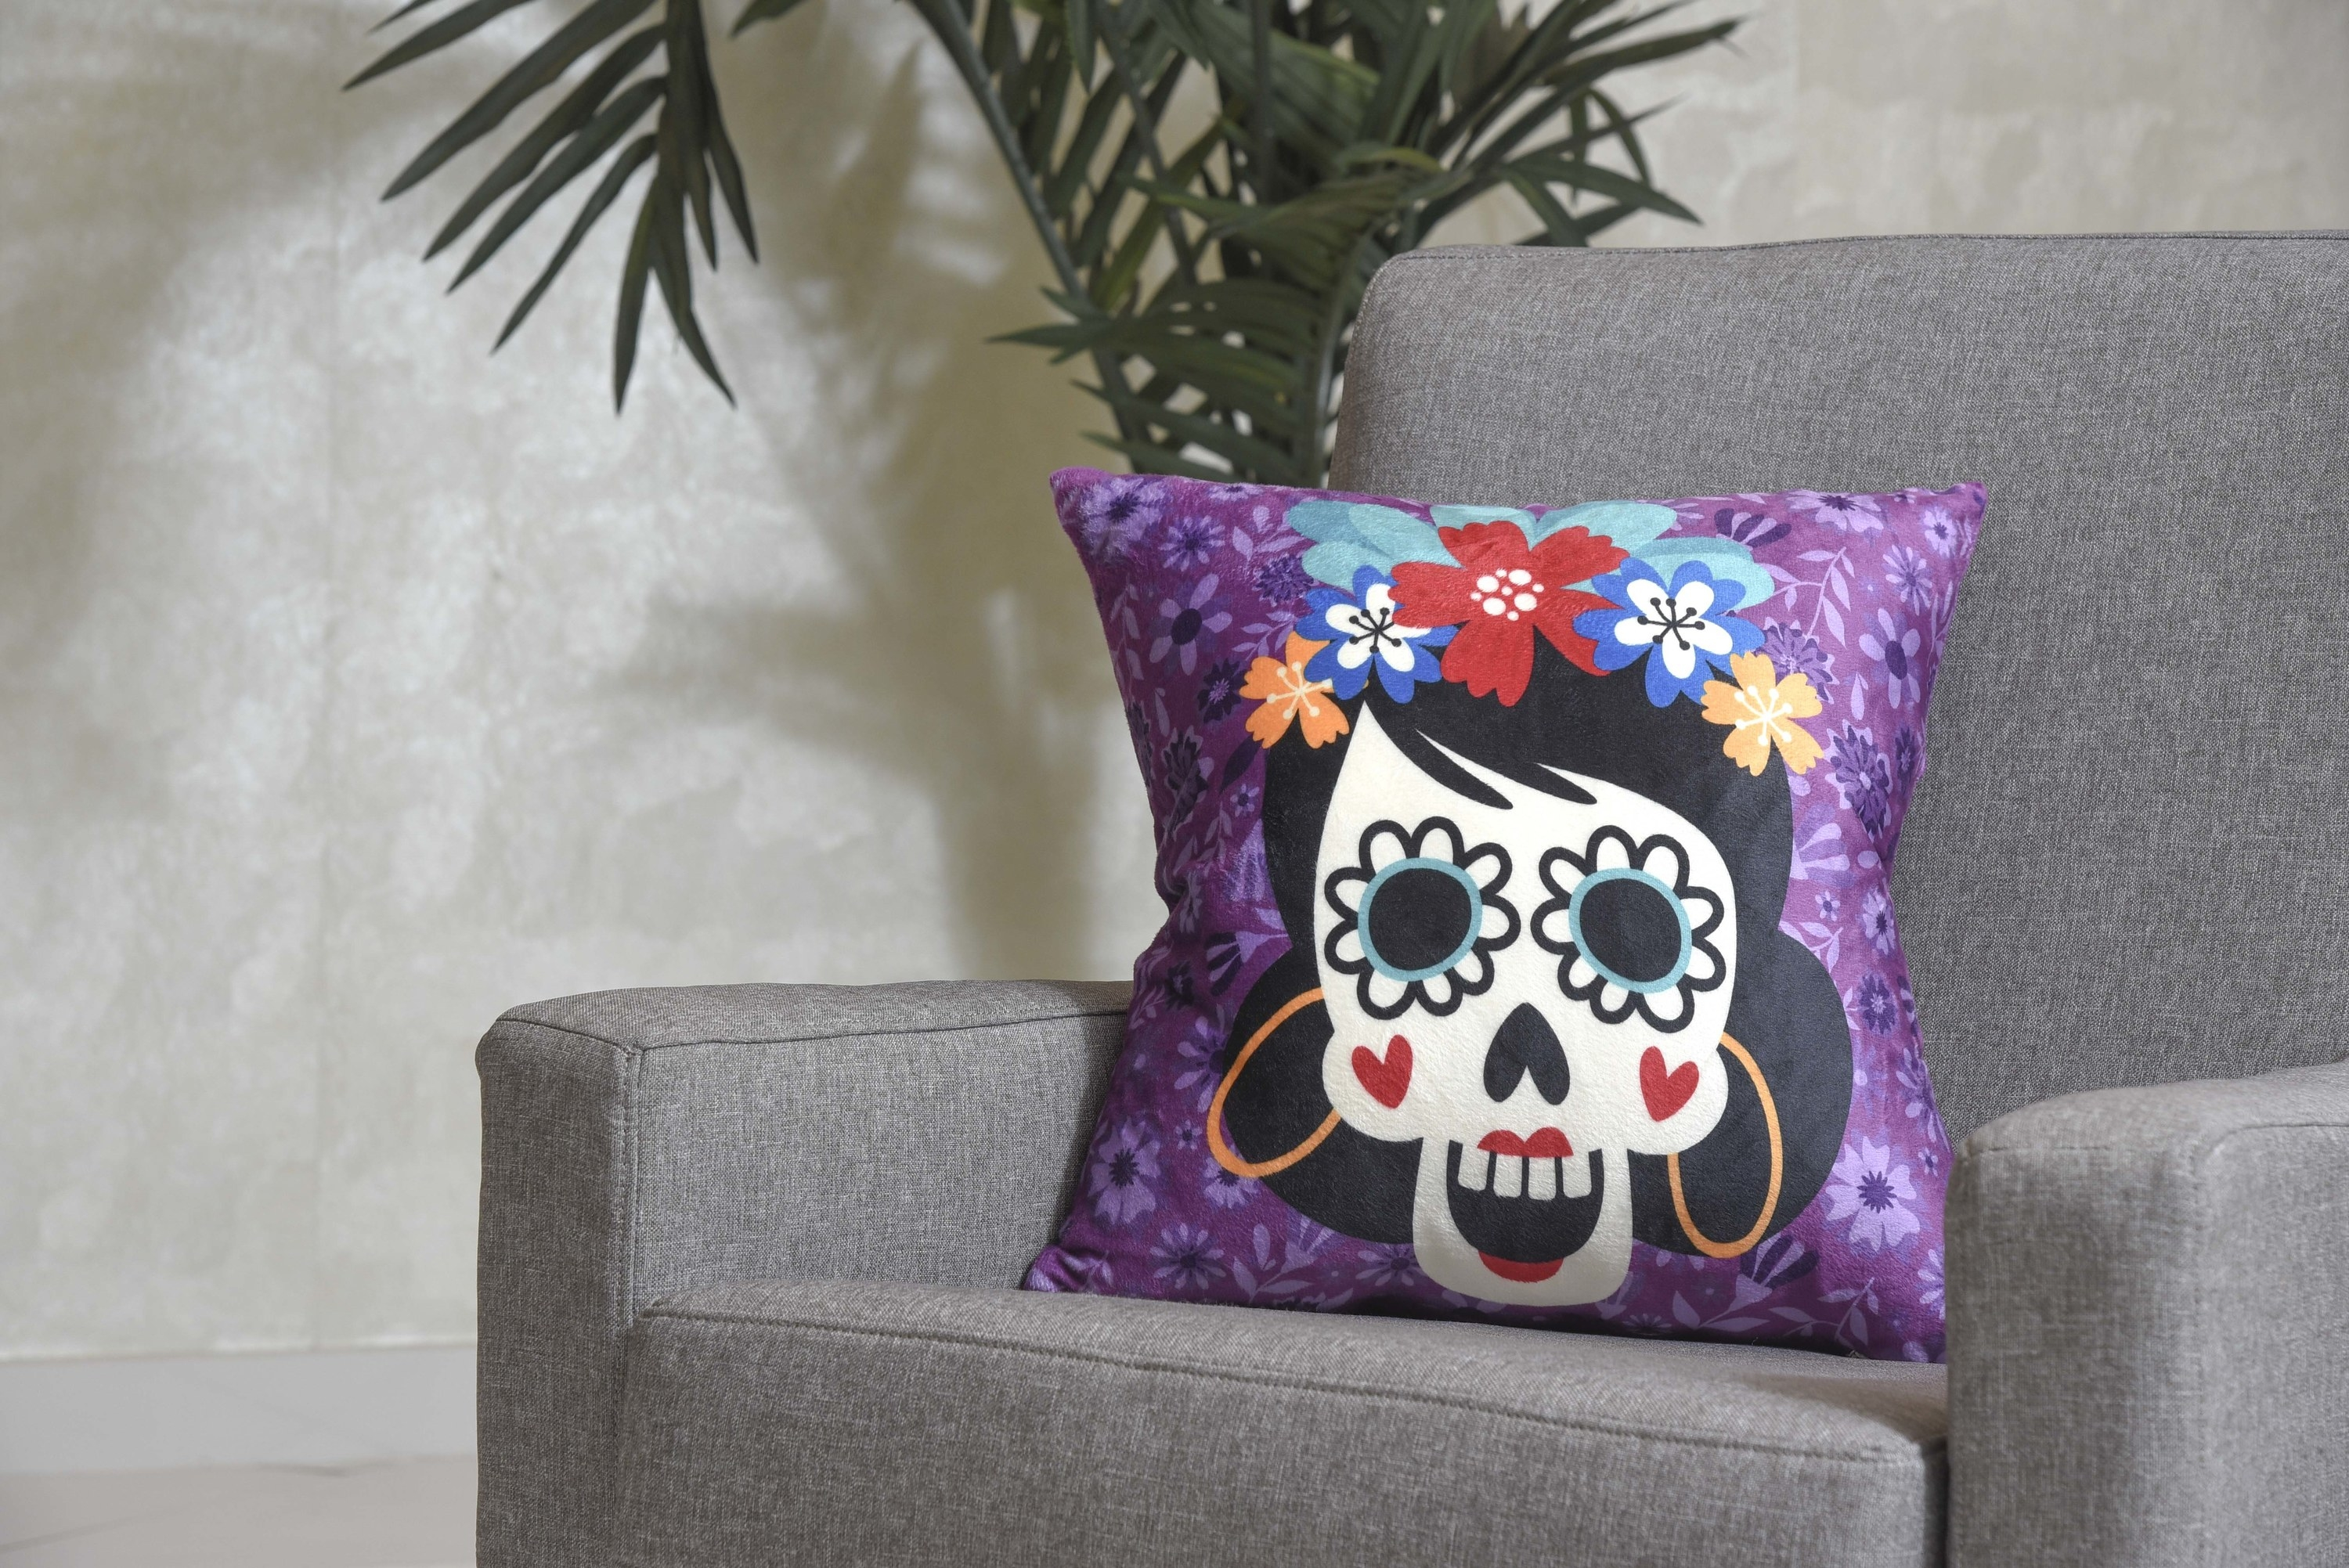 The purple skull printed pillow on a grey couch